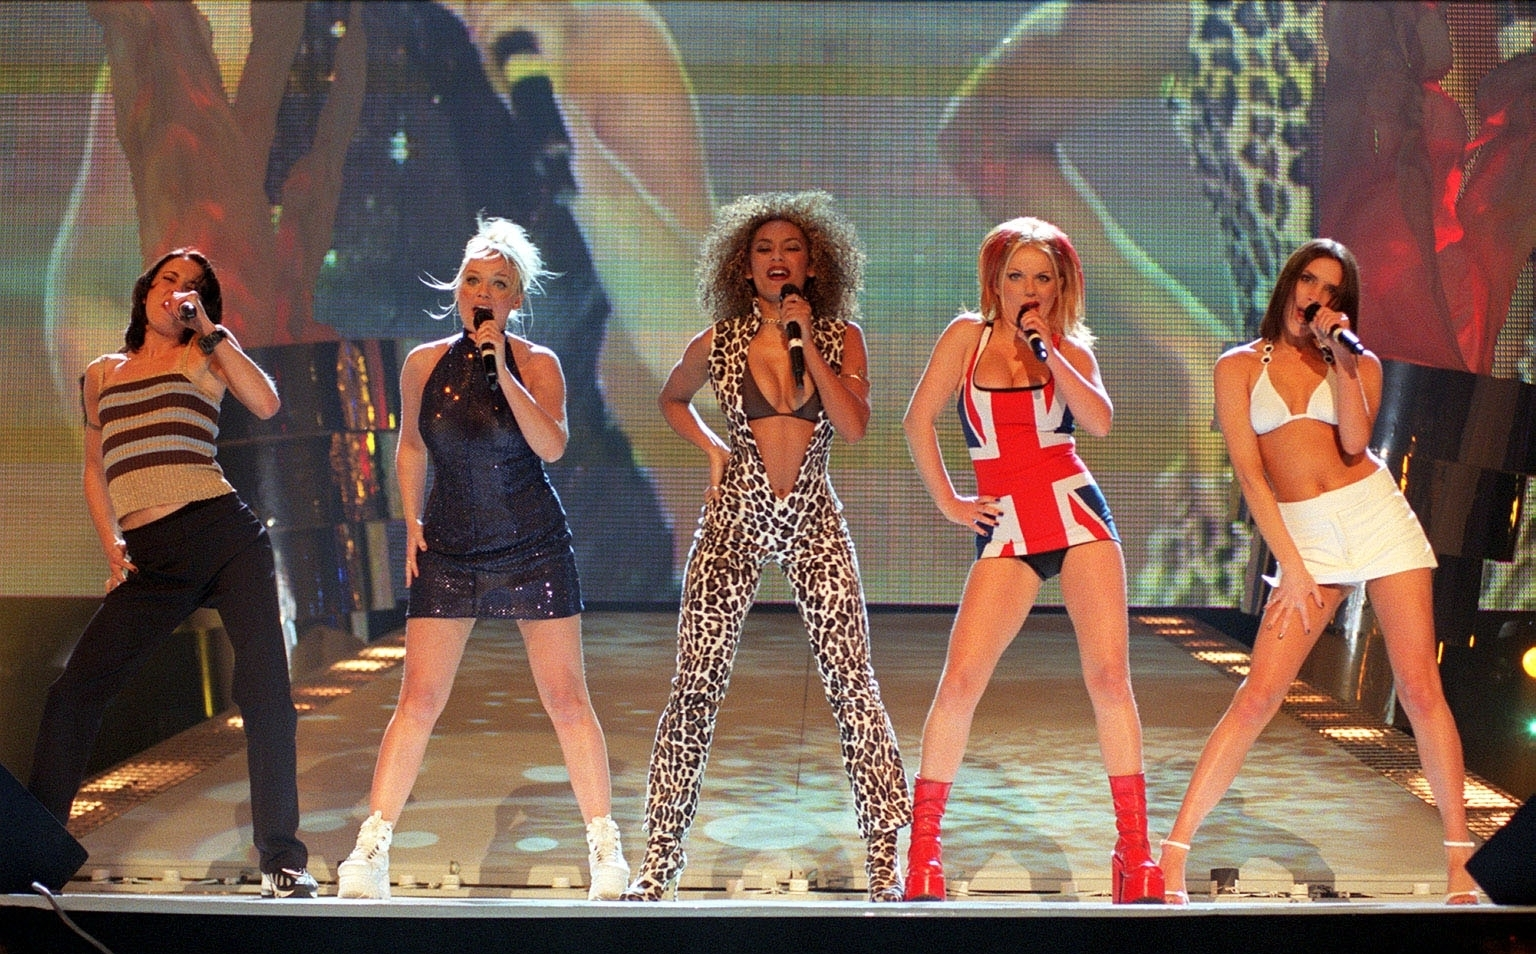 Library file dated 24/02/97 of the Spice Girls performing at the Brit Awards..